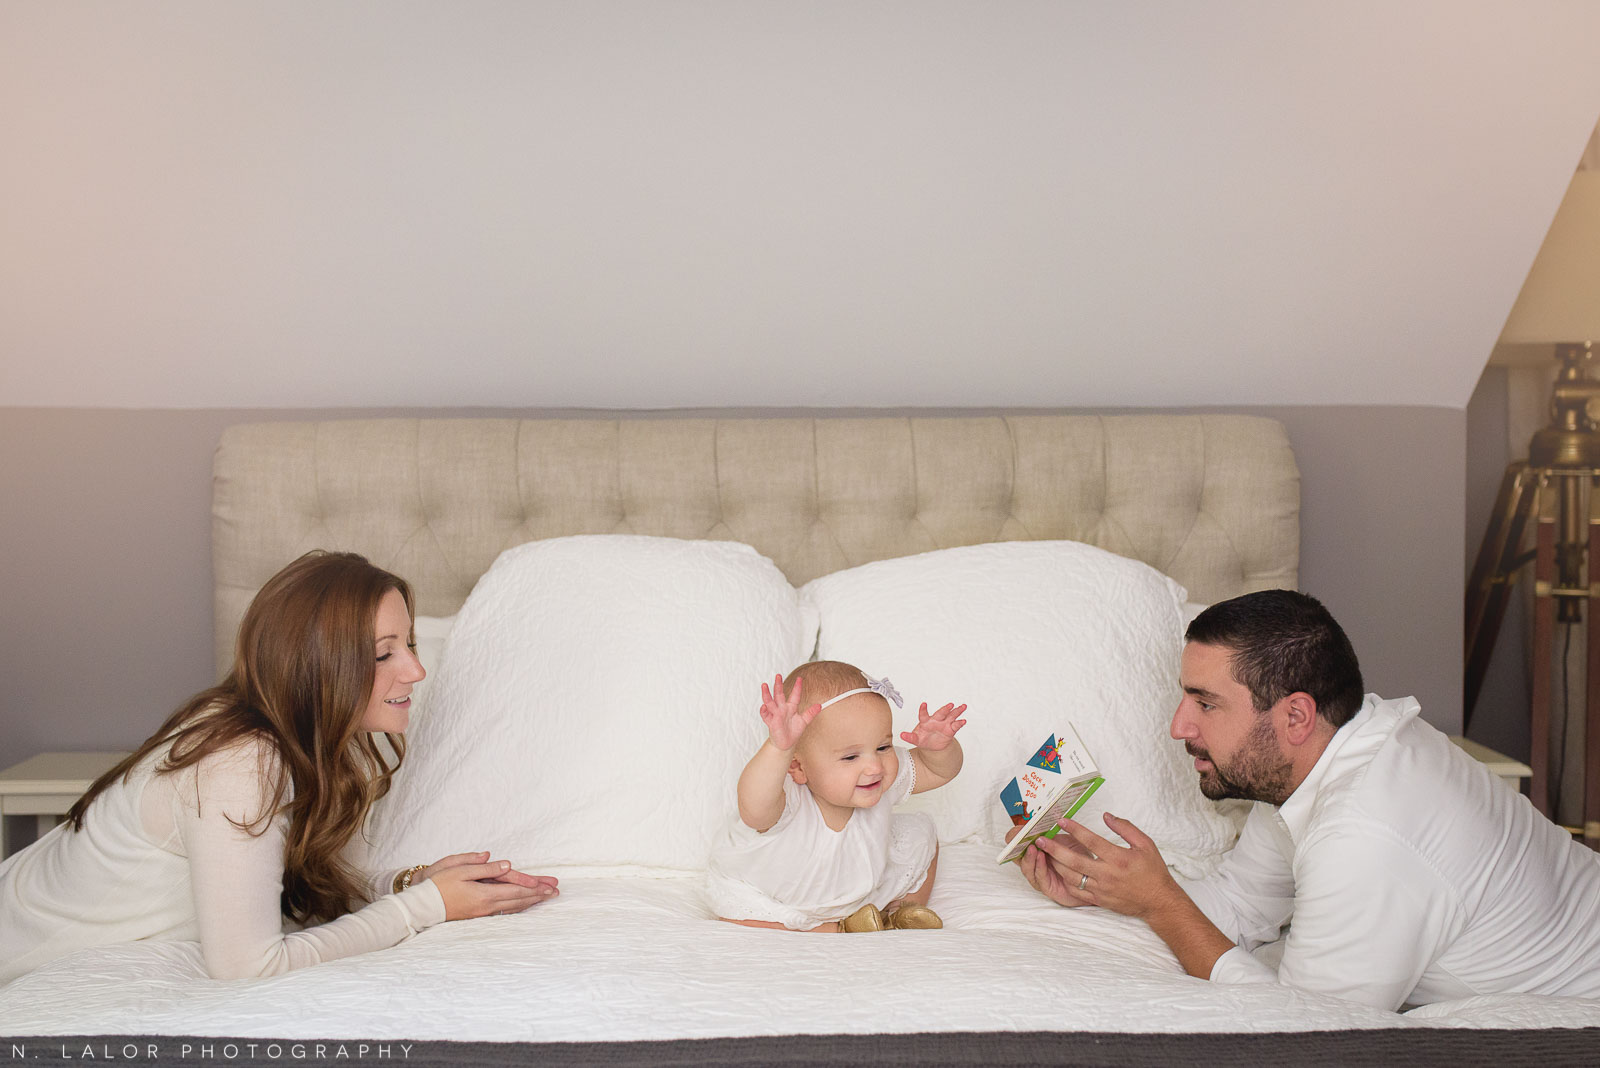 Parents playing on the bed with their 1-year old daughter. Naturally styled family portrait by N. Lalor Photography.